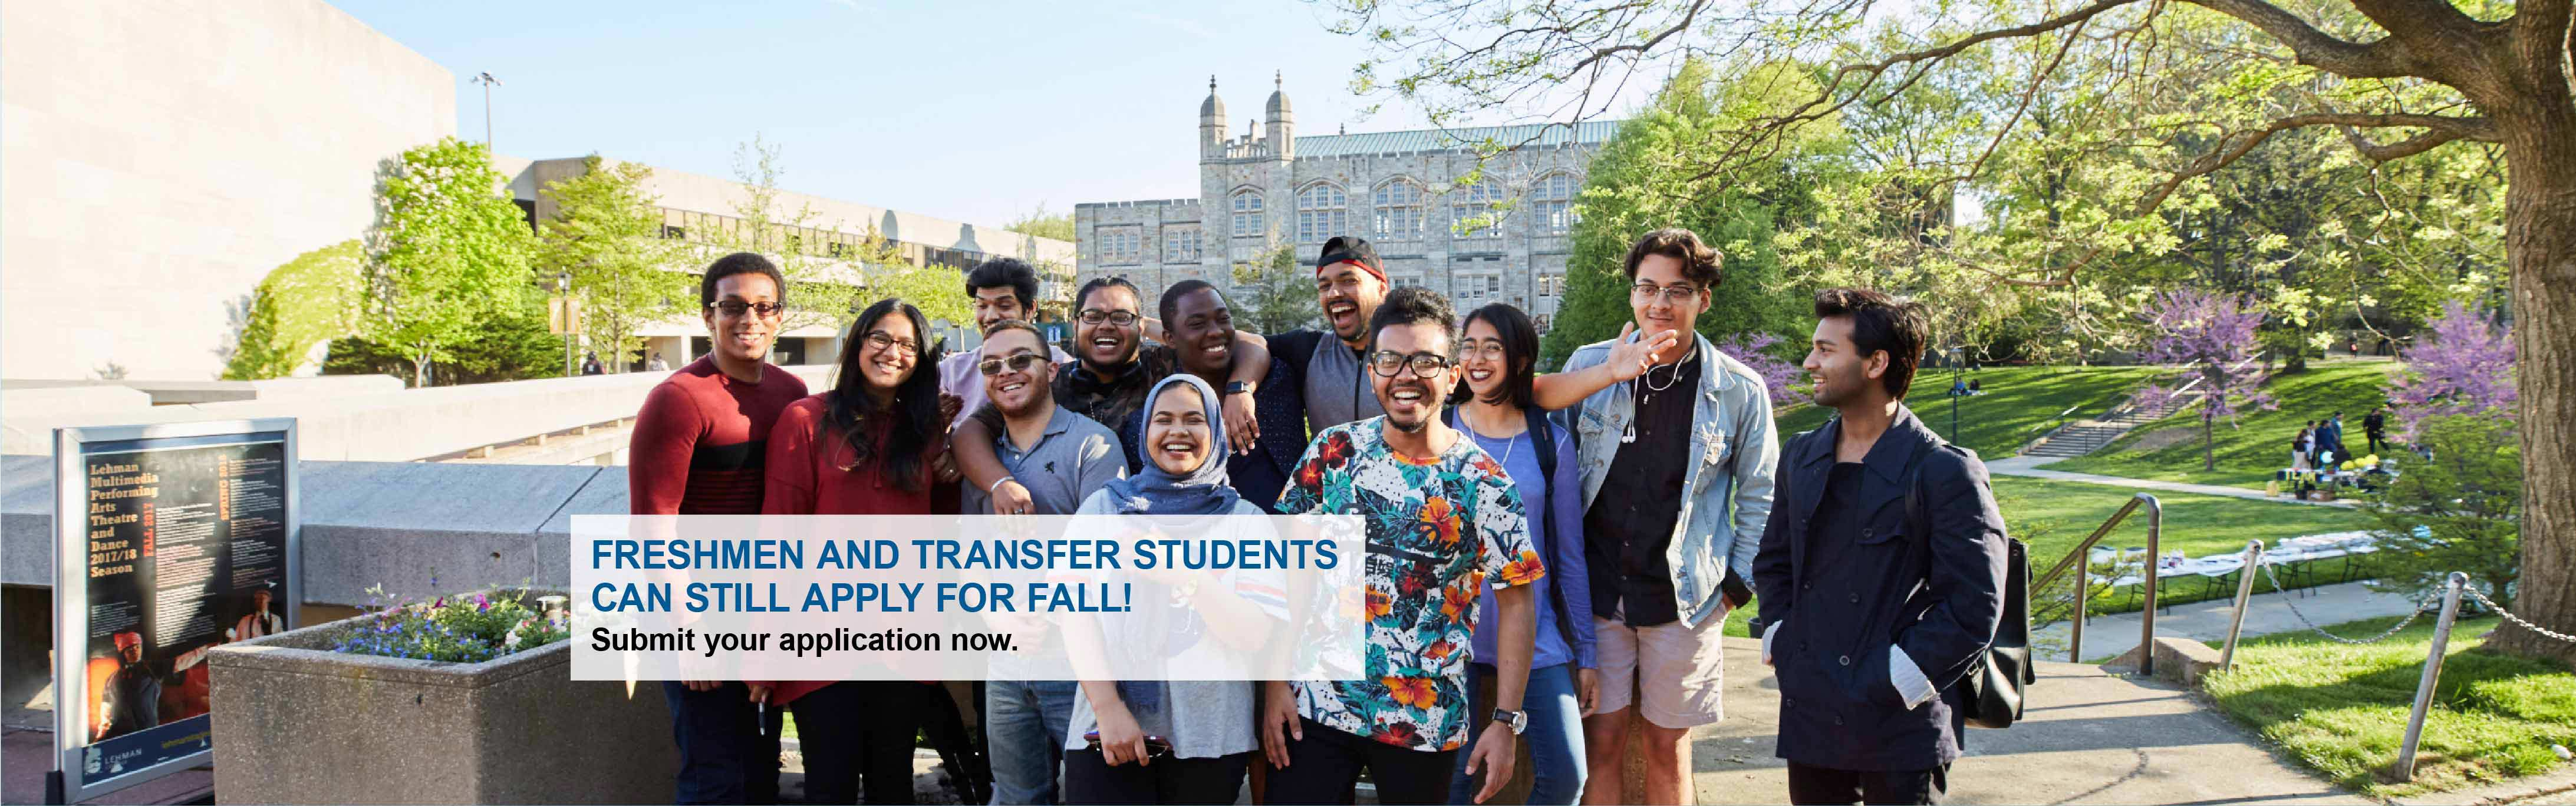 Fall 2020 Undergrad Admissions Banner